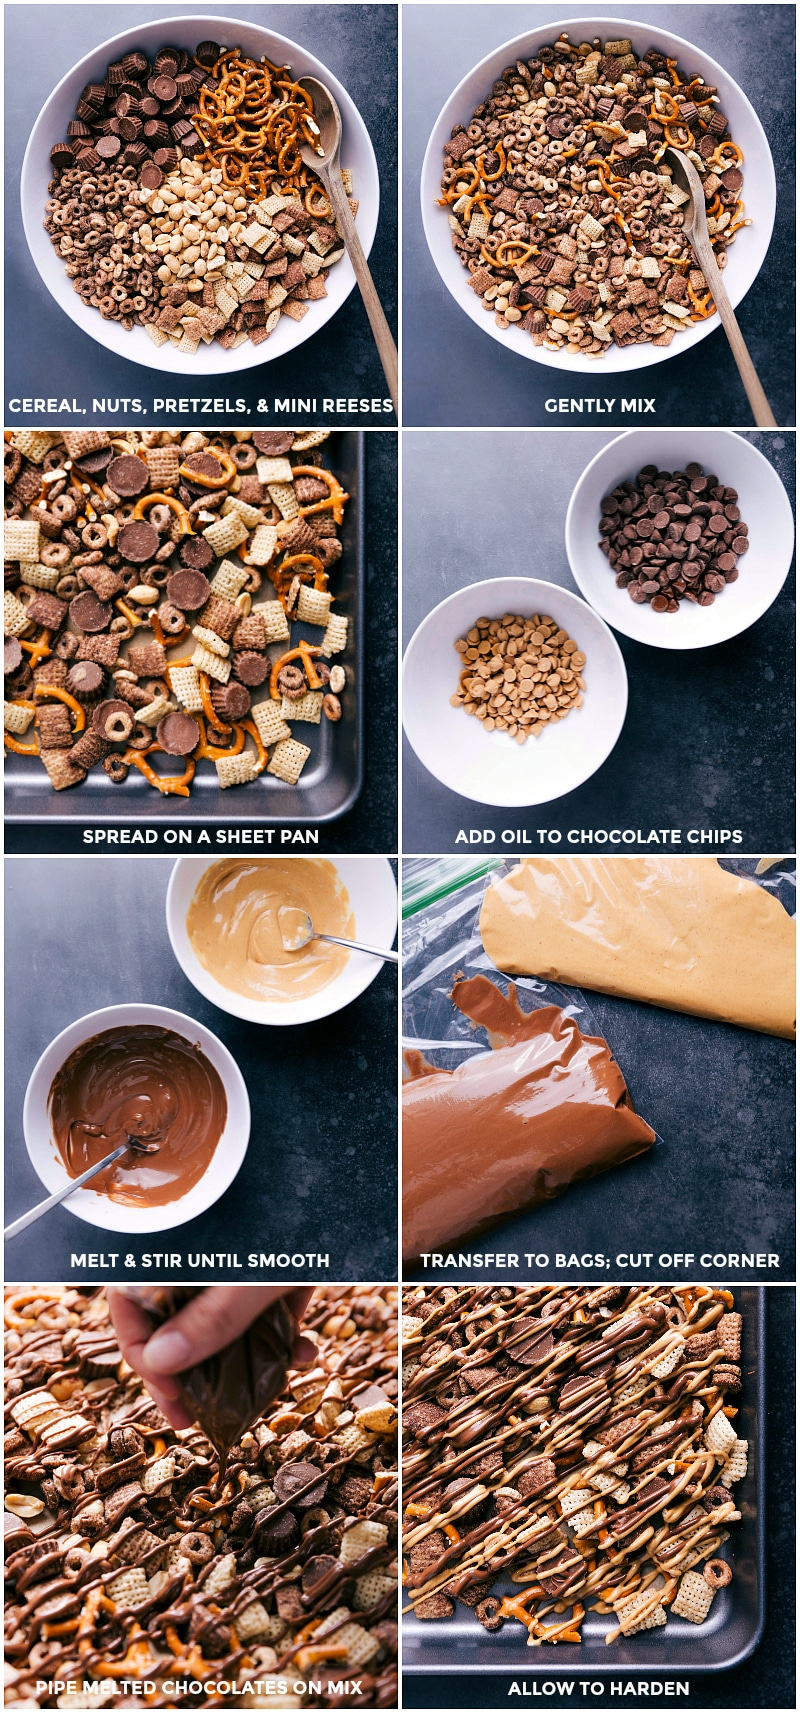 Process shots-- images of all the components of the snack mix being added to a bowl; ingredients being mixed together; the chocolate chips and peanut butter chips being melted and piped over the mix.